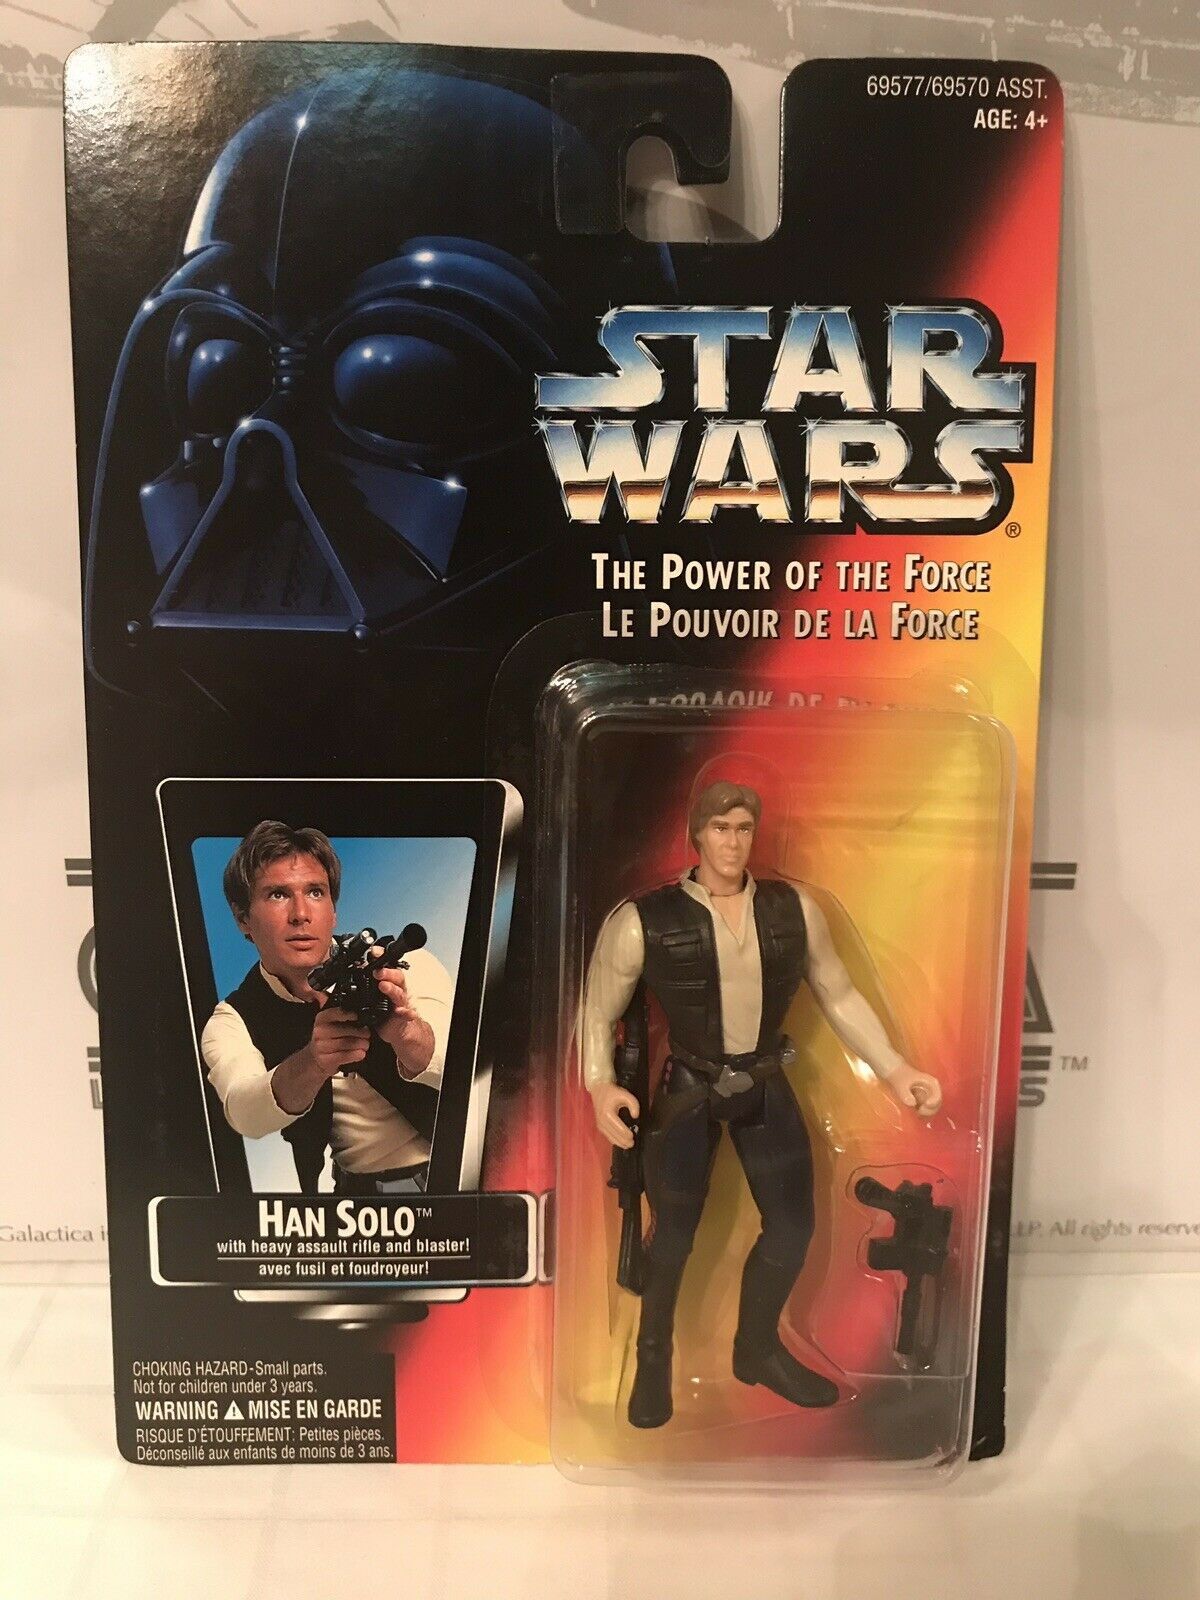 Star Wars The Power Of The Force Han Solo French Canadian Square Card